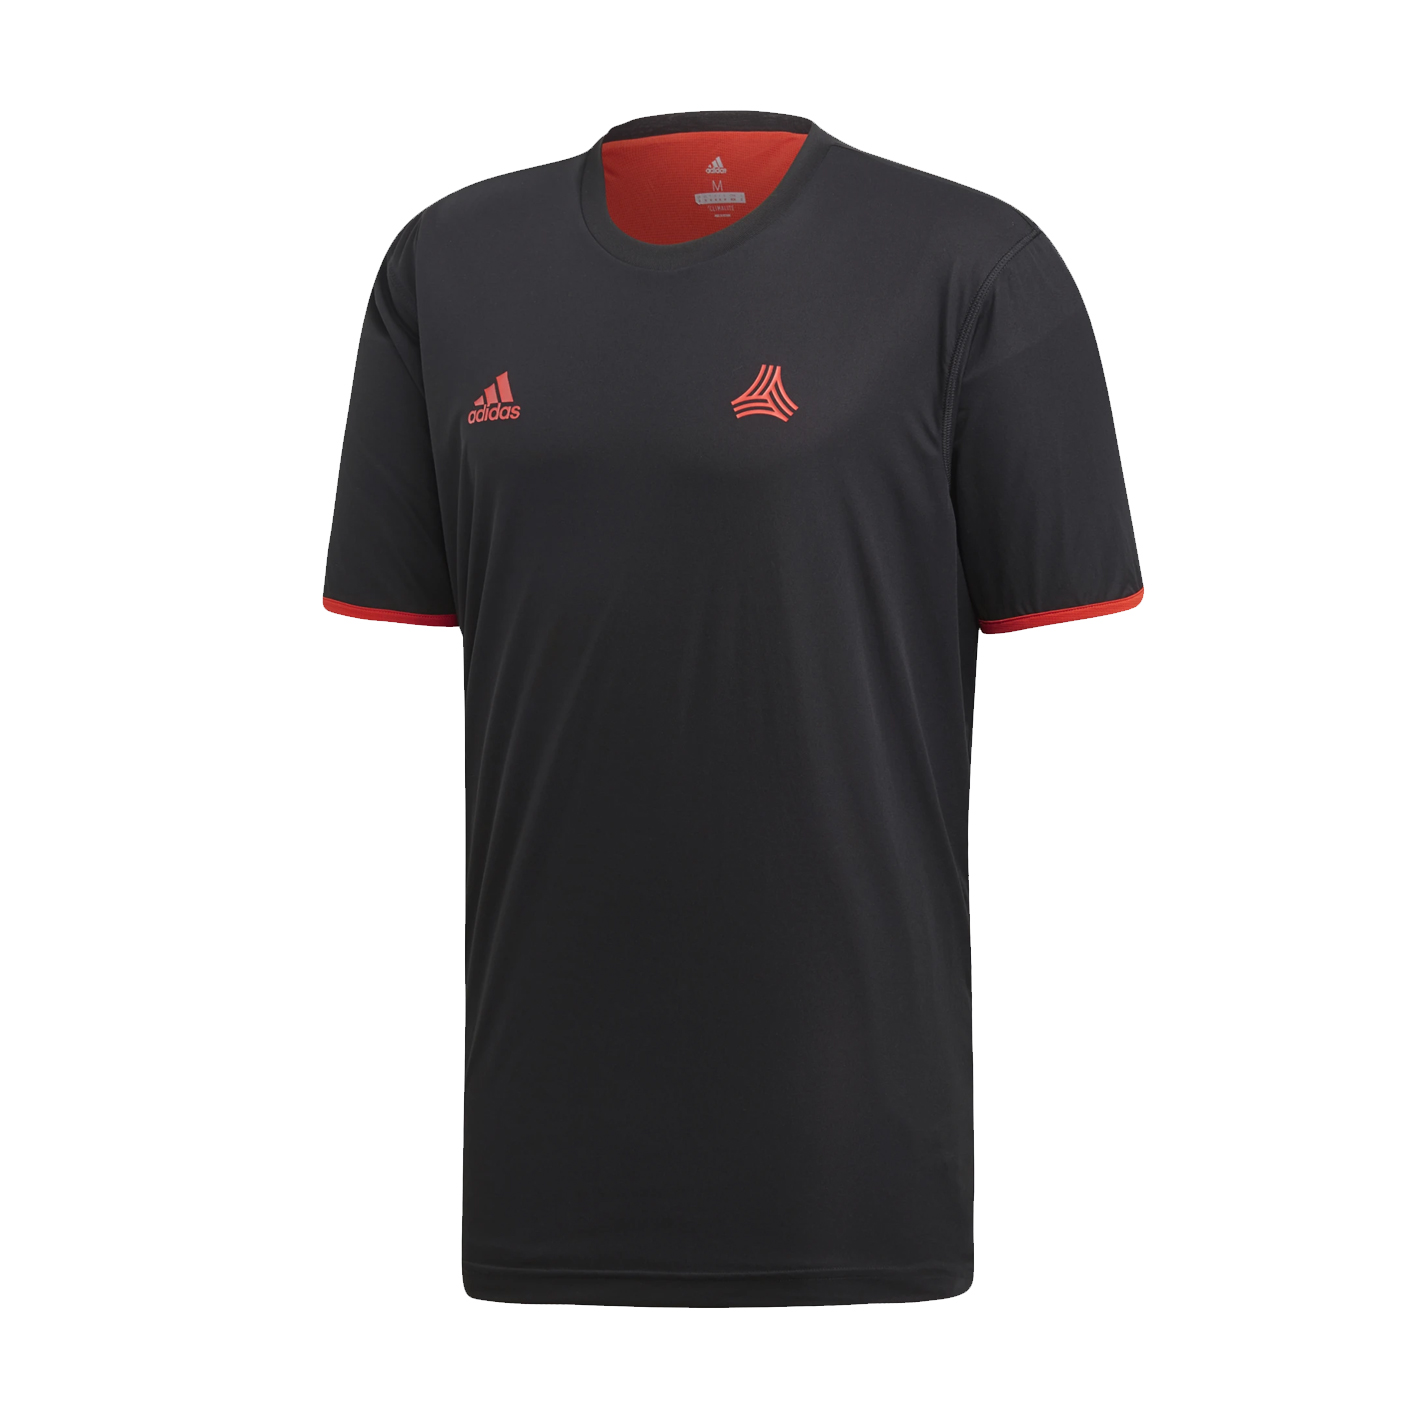 e1b6f8d7 Adidas Men's TAN Reversible Football Jersey - Black/Red